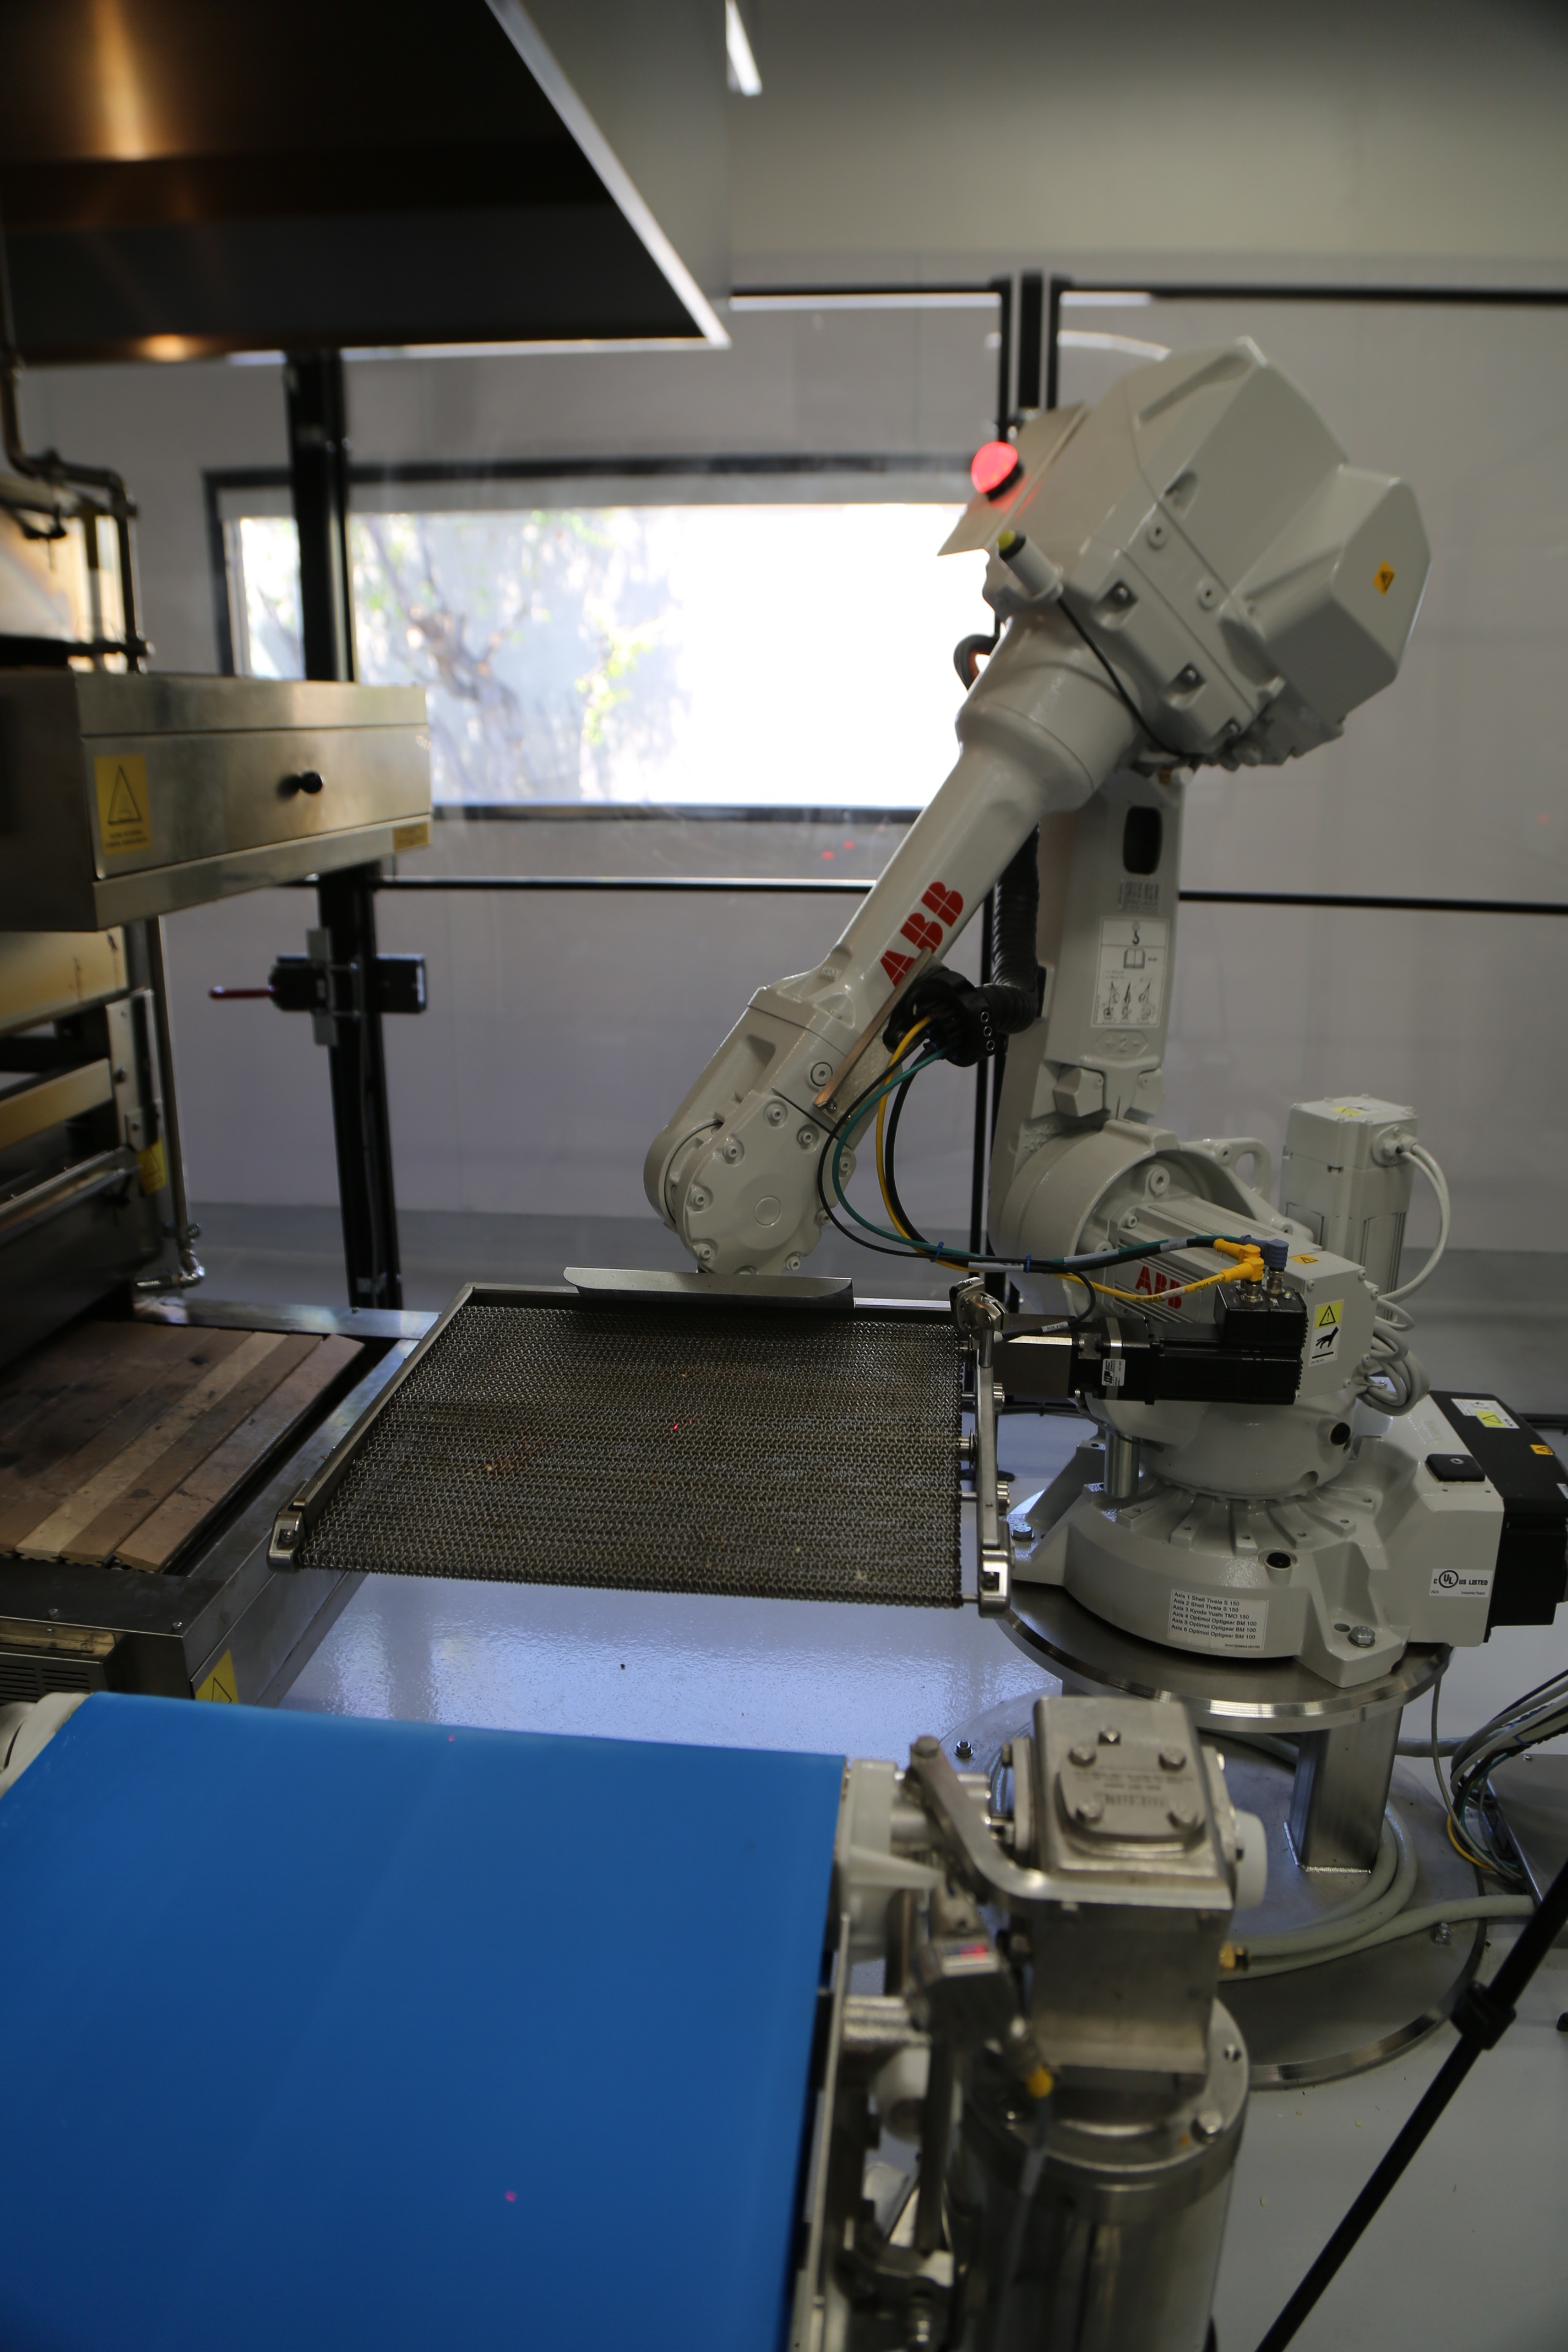 Robots And On Board Ovens Deliver On Zumes Promise Of Better Pizza